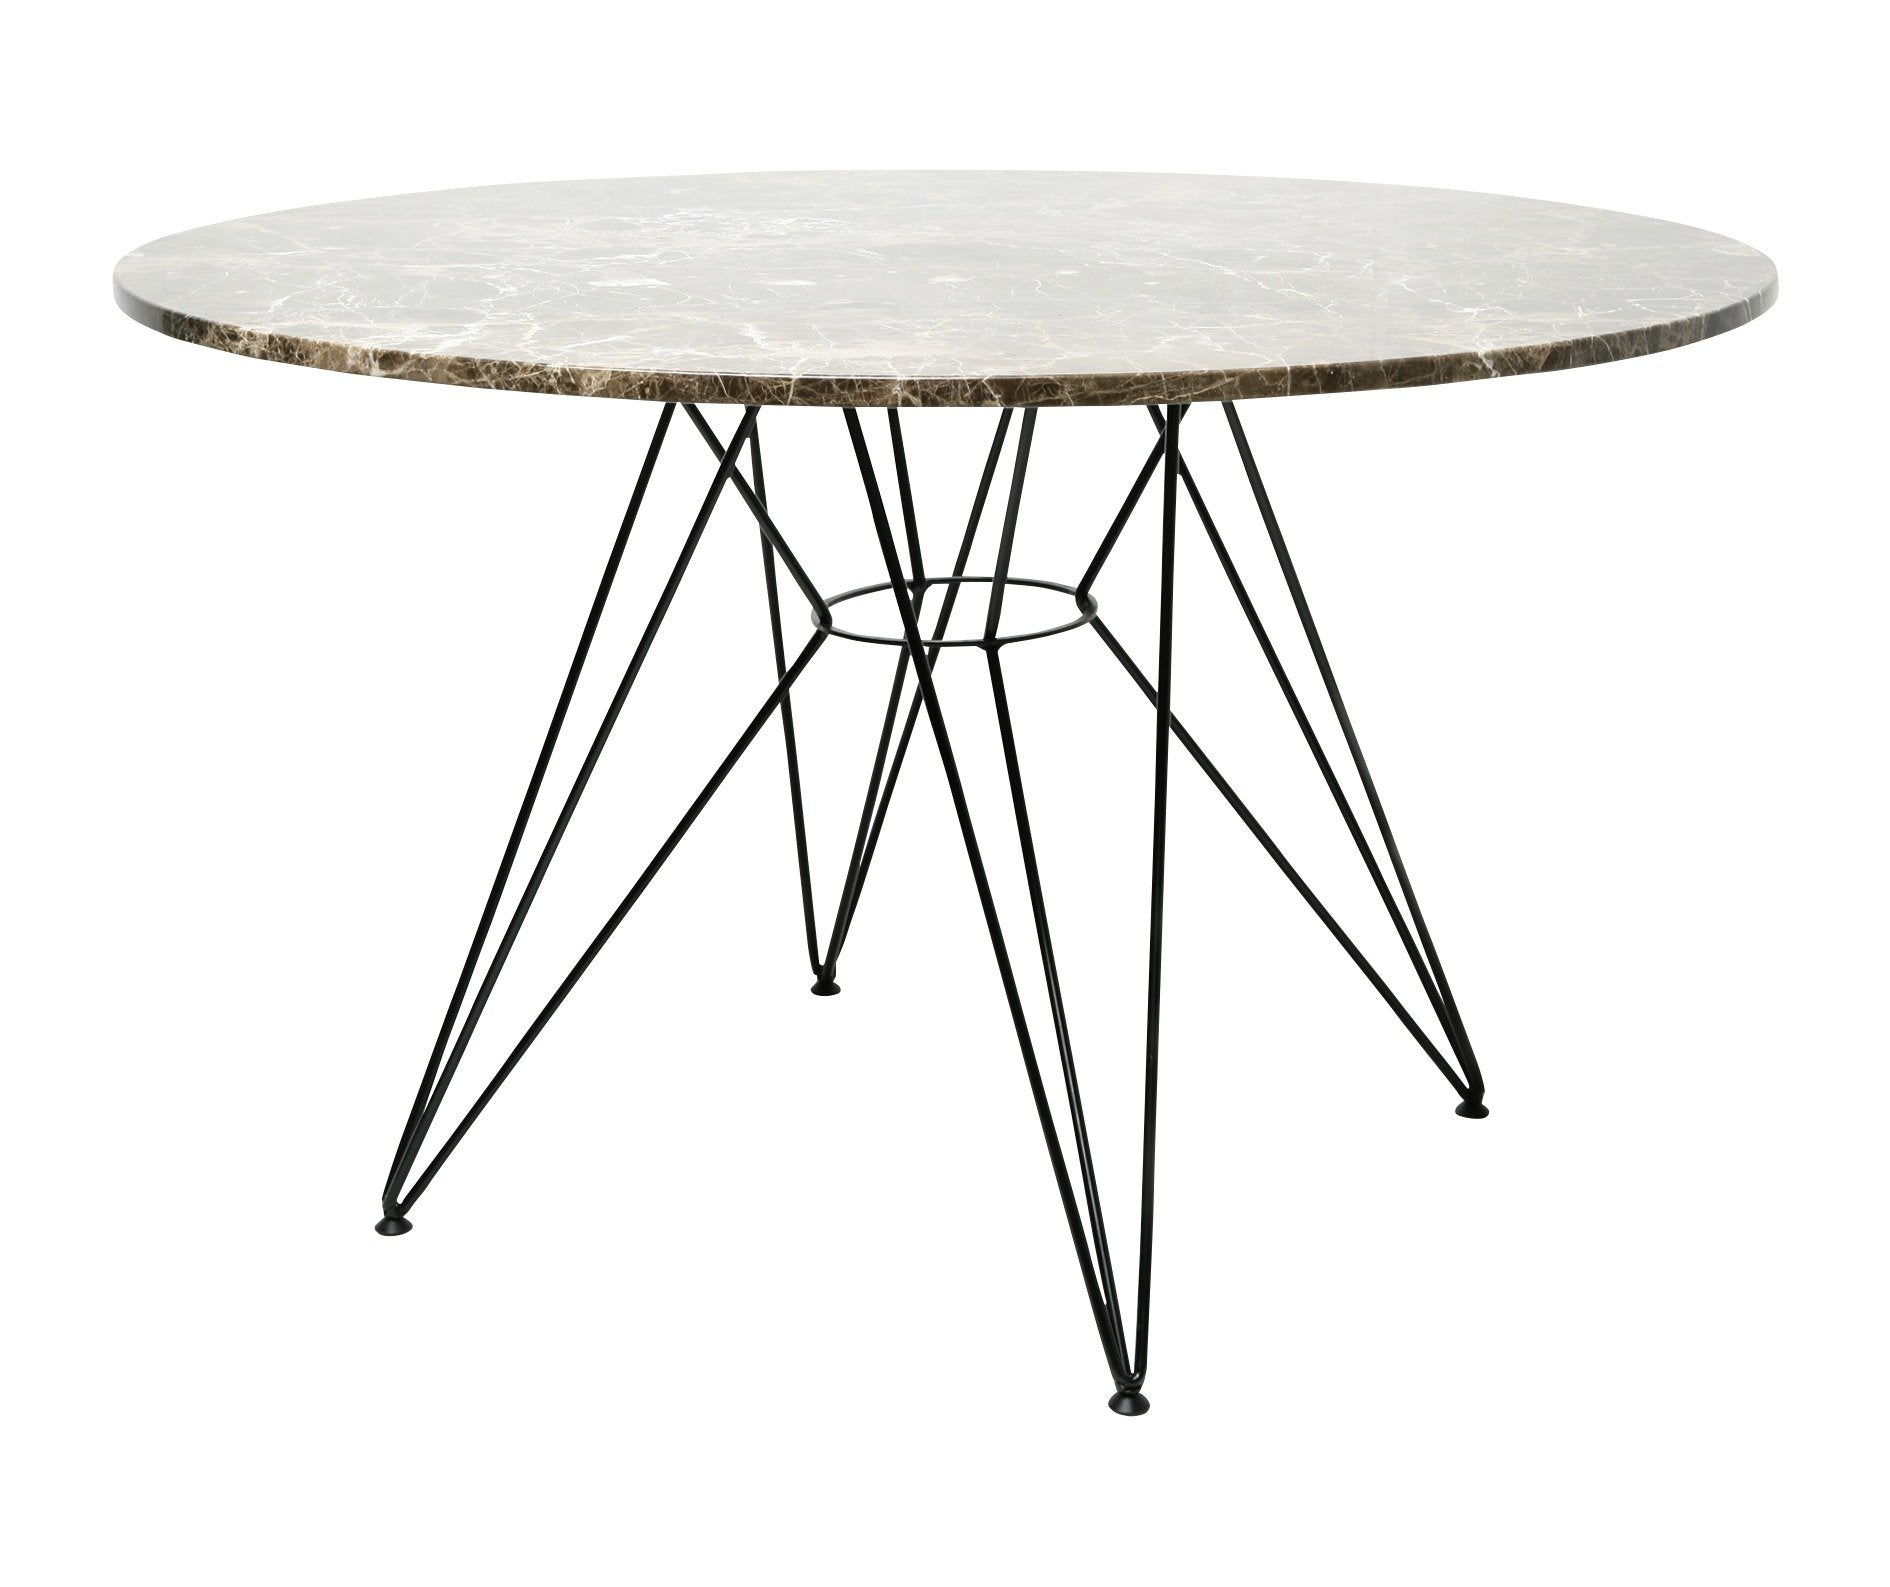 Anti-C 109 Dining Table-Lobster's Day-Contract Furniture Store